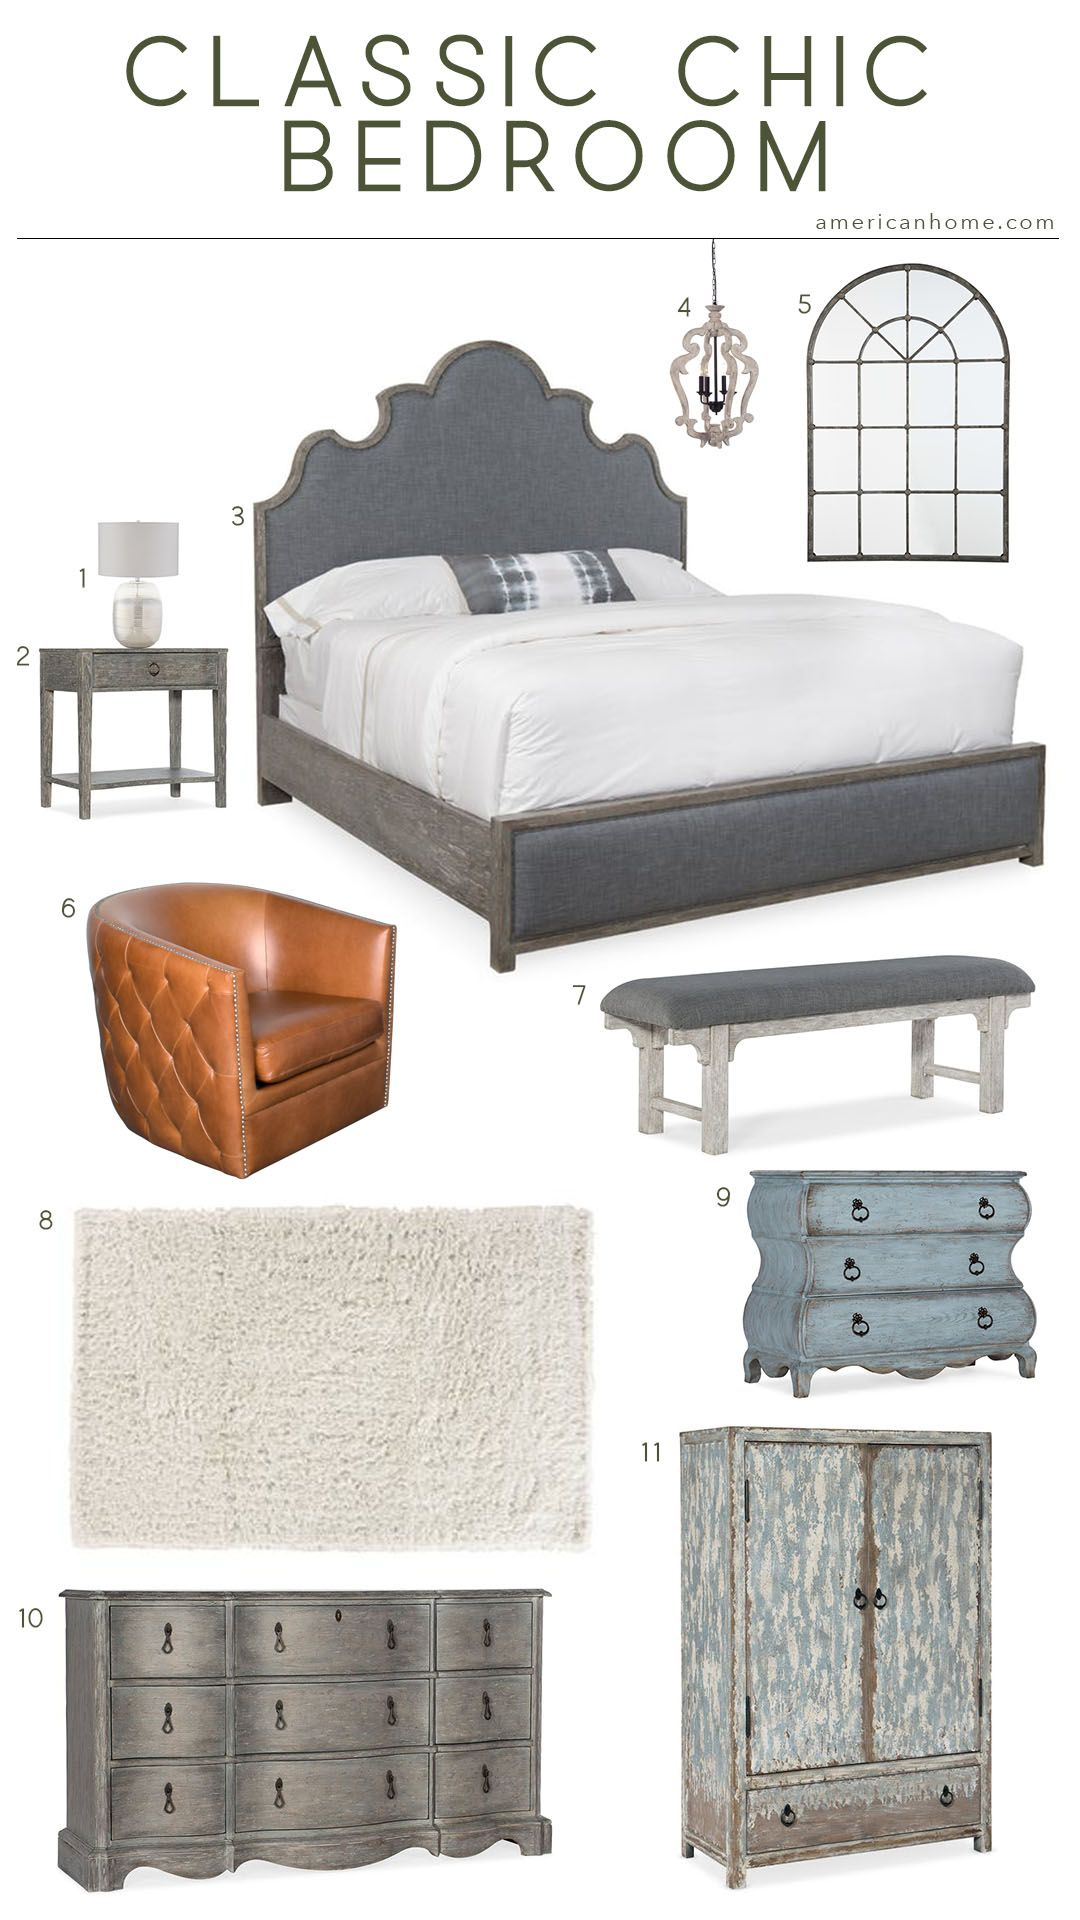 Bedroom Furniture High Resolution: Classic Chic Bedroom Inspiration In 2019